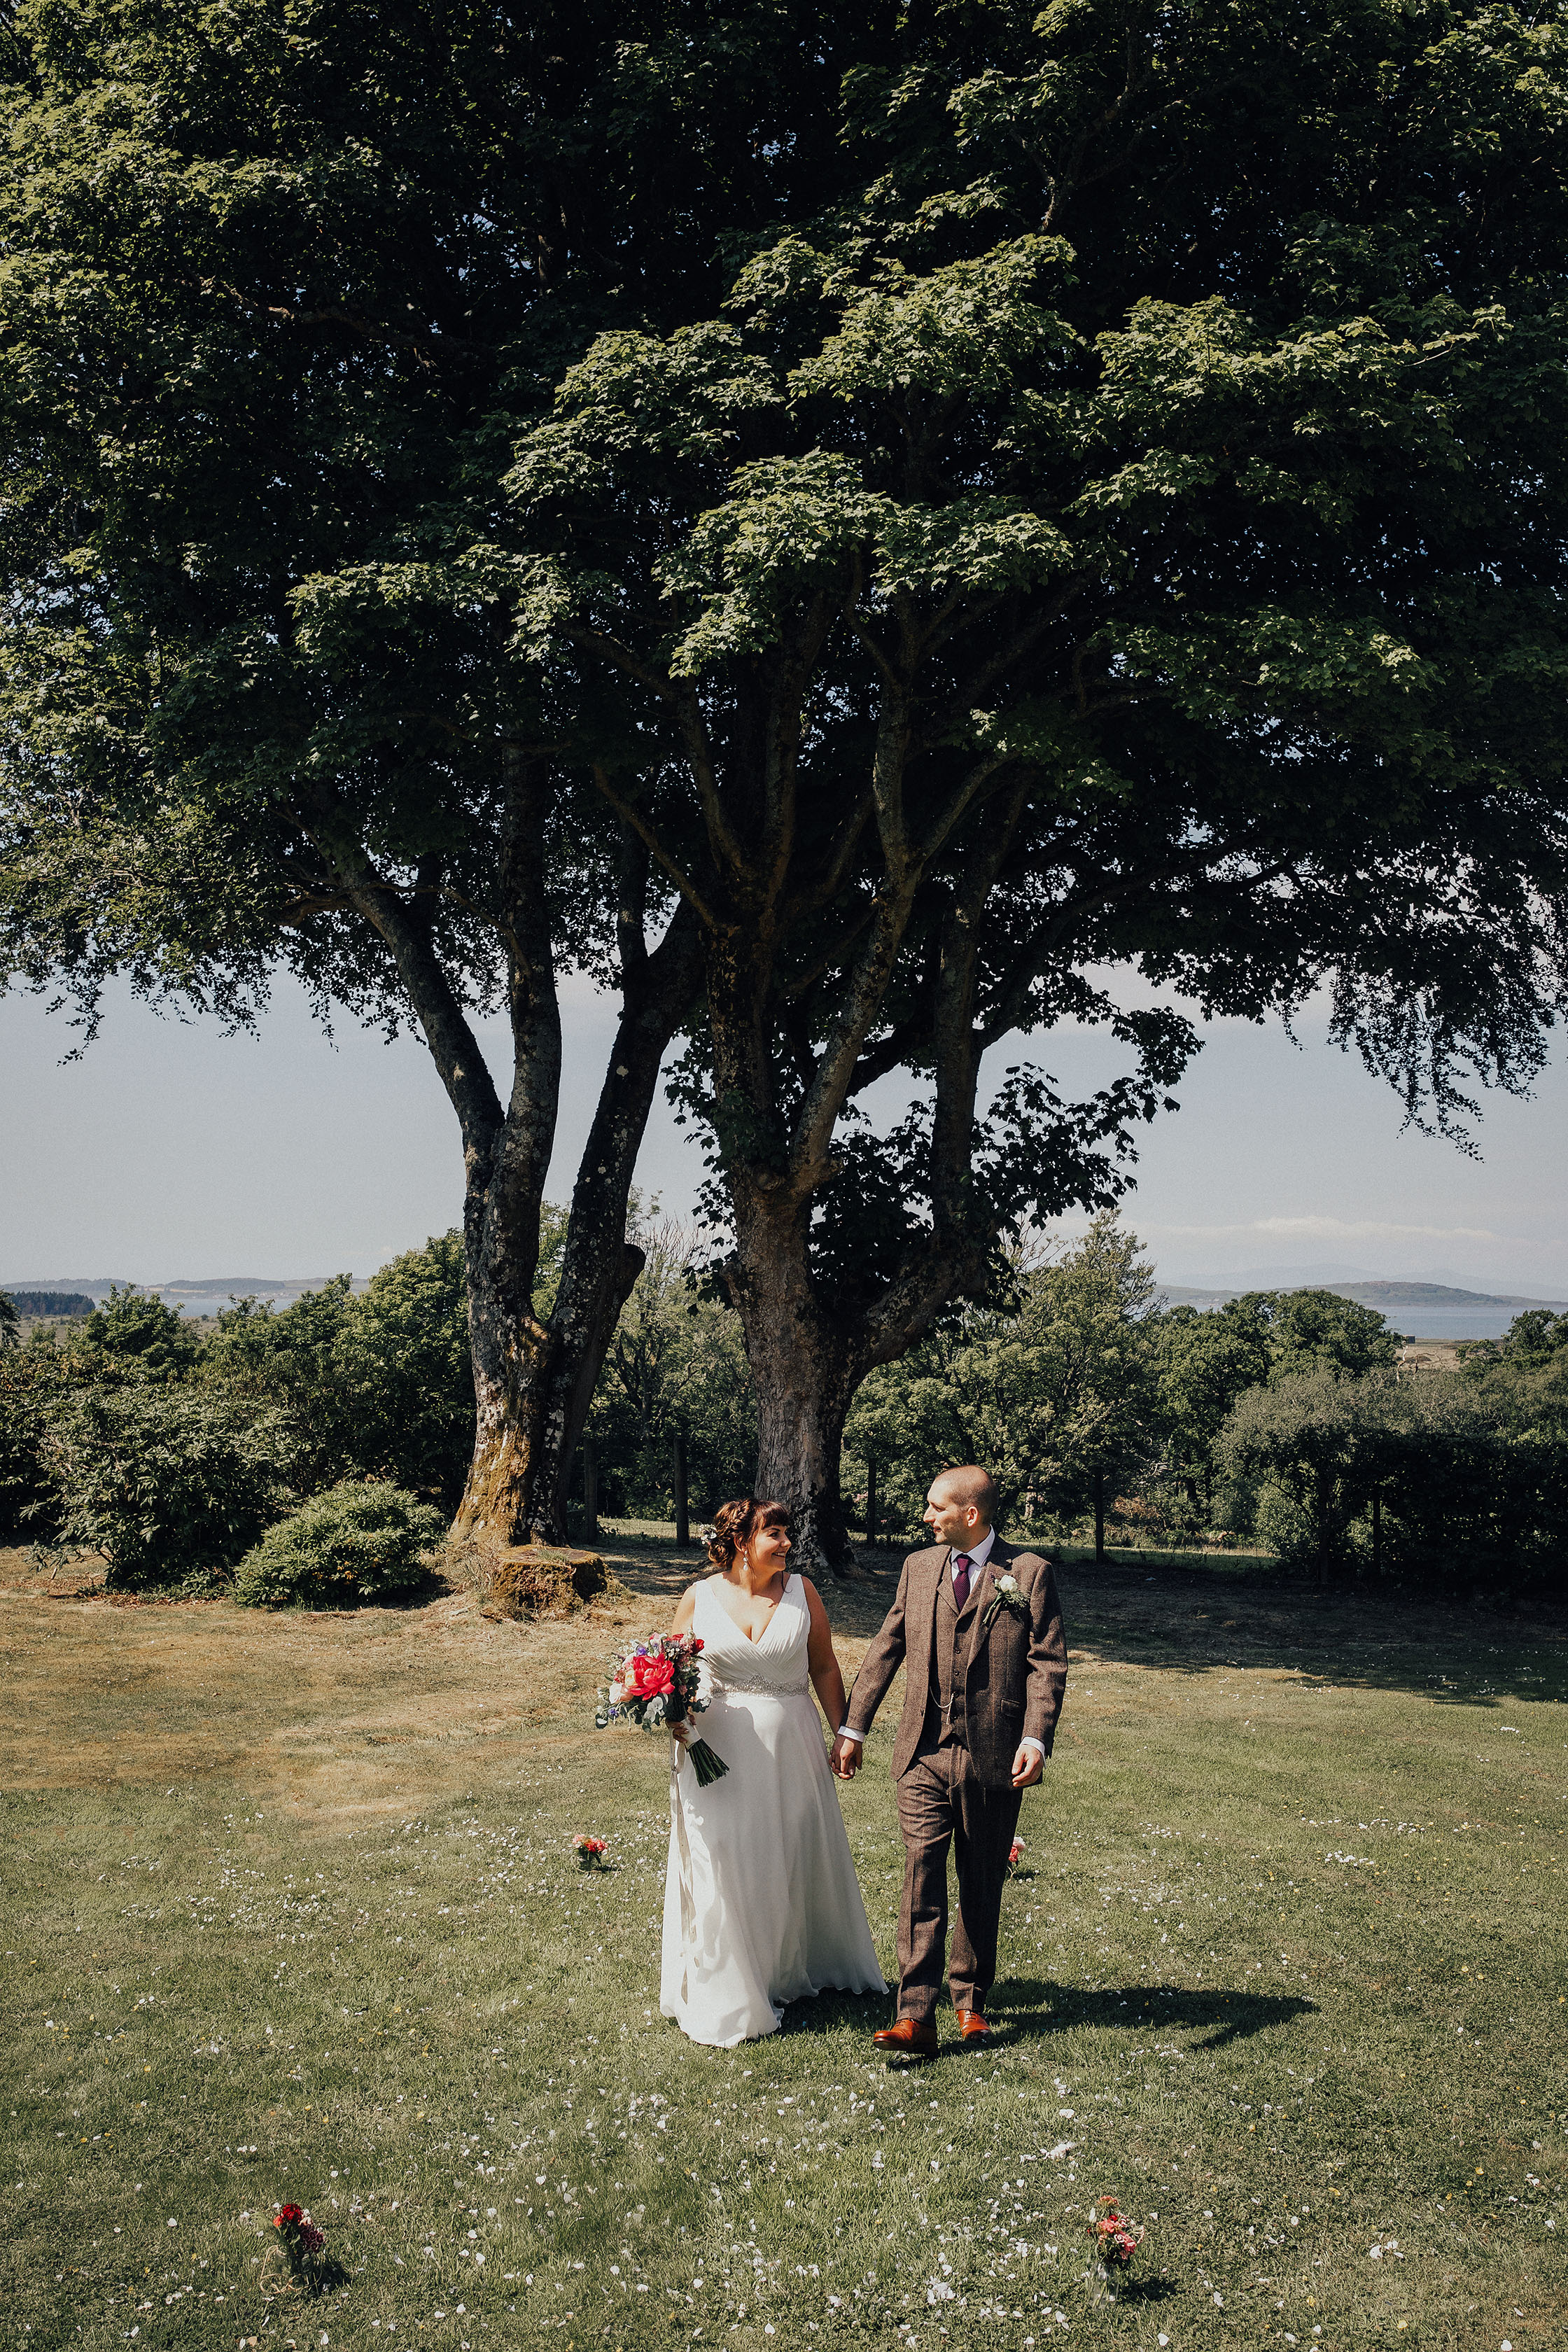 SCOTTISH_ELOPEMENT_PHOTOGRAPHER_PJ_PHILLIPS_PHOTOGRAPHY_76.jpg